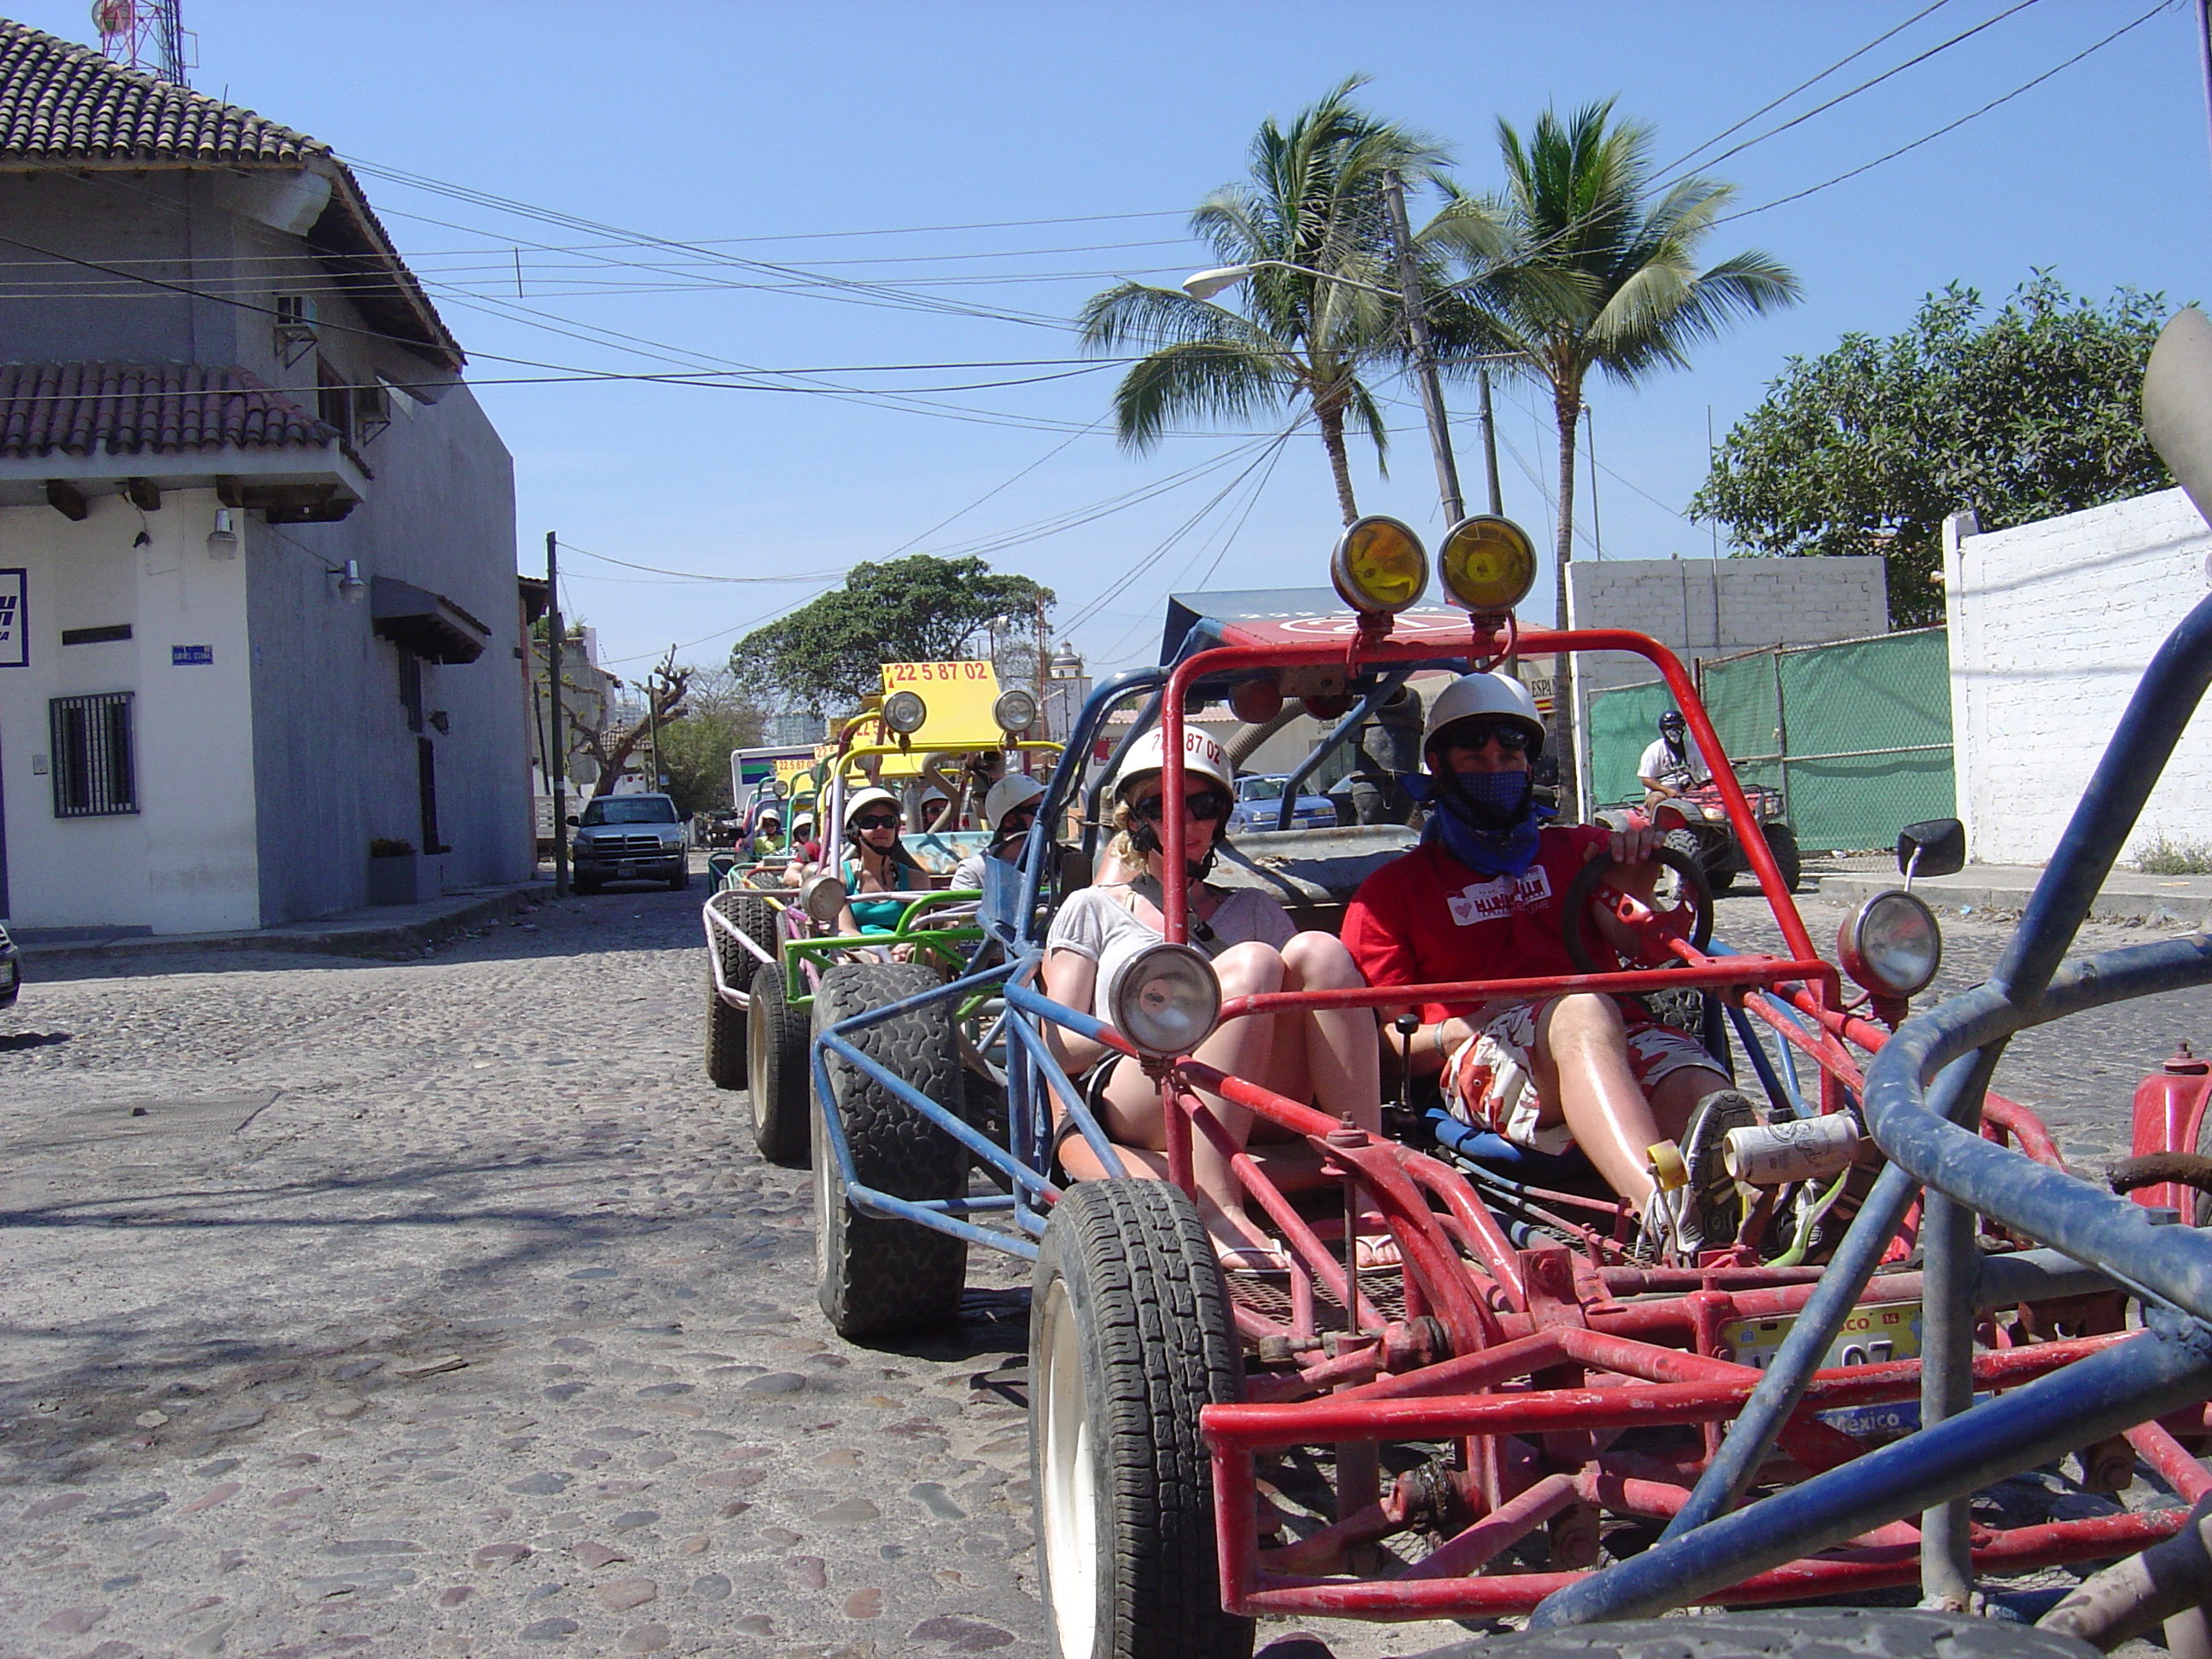 Jeremy and Jen when we were driving through the streets of Puerto Vallarta